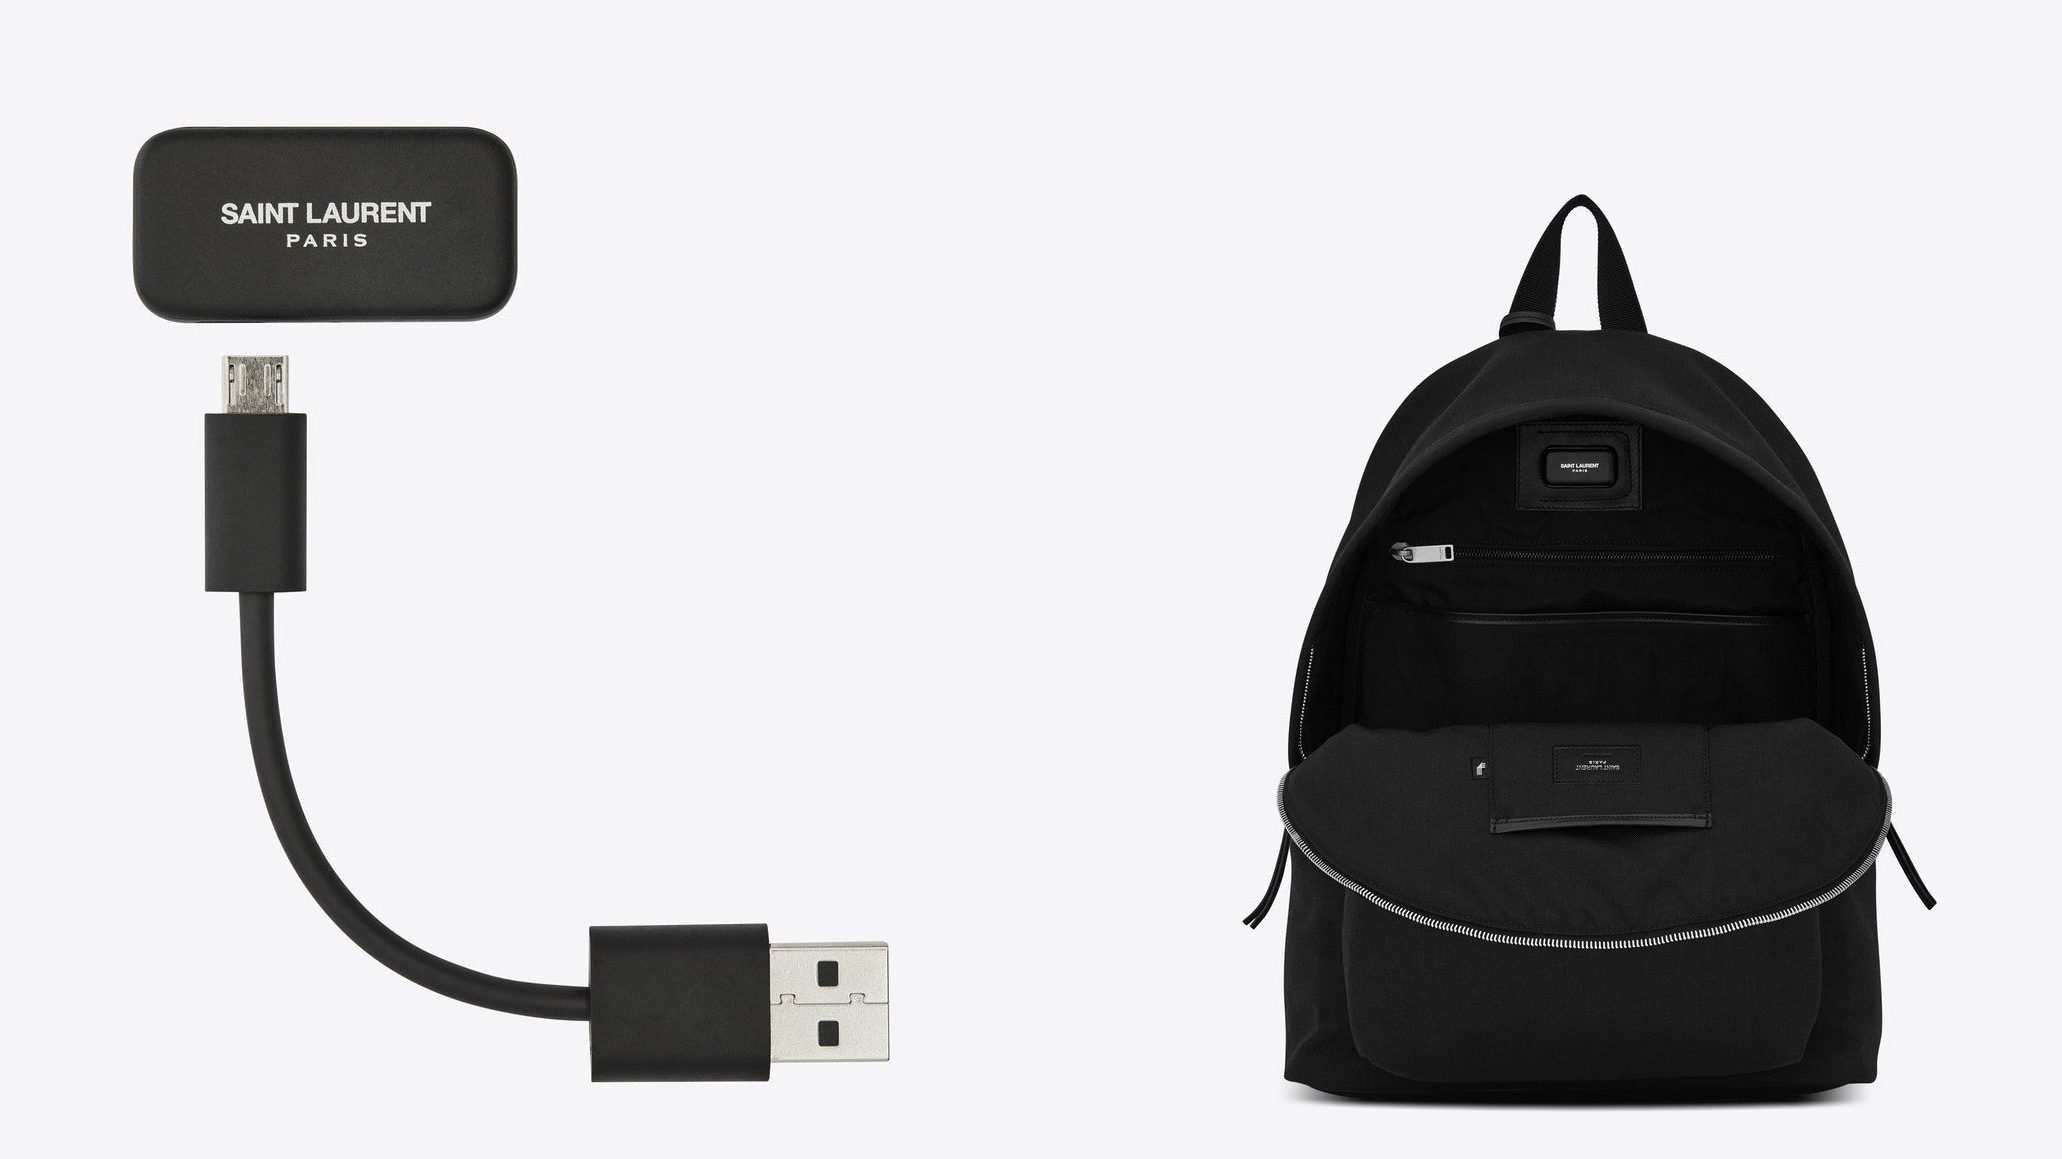 The Cit-e backpack YSL and Jacquard by Google The Cit-e backpack YSL and Jacquard by Google Vanity Teen Menswear & new faces magazine